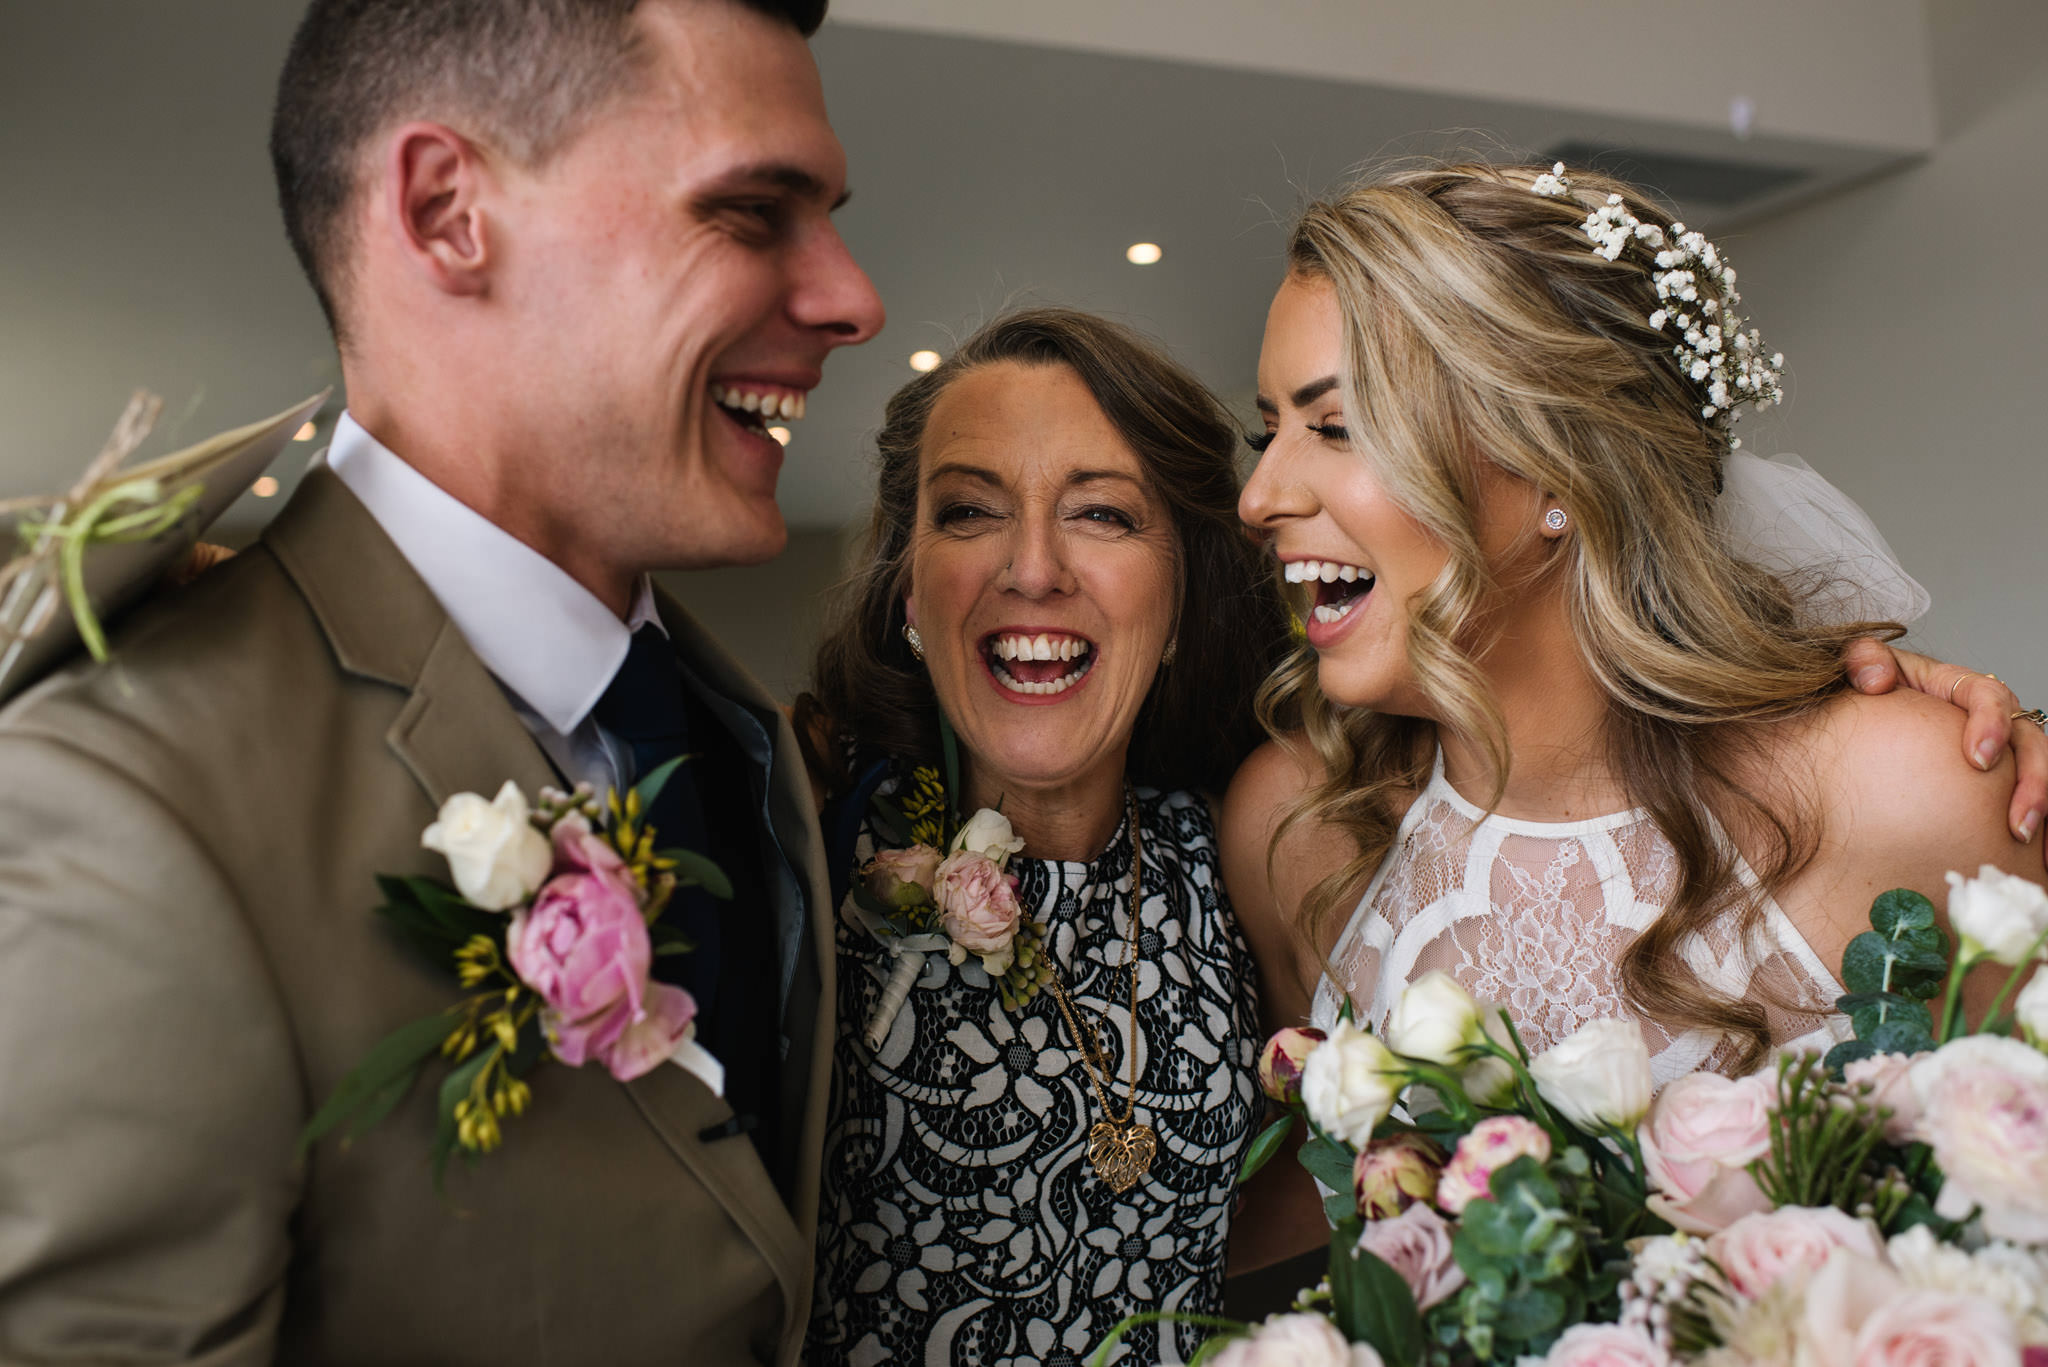 Mother of the bride embracing newlyweds